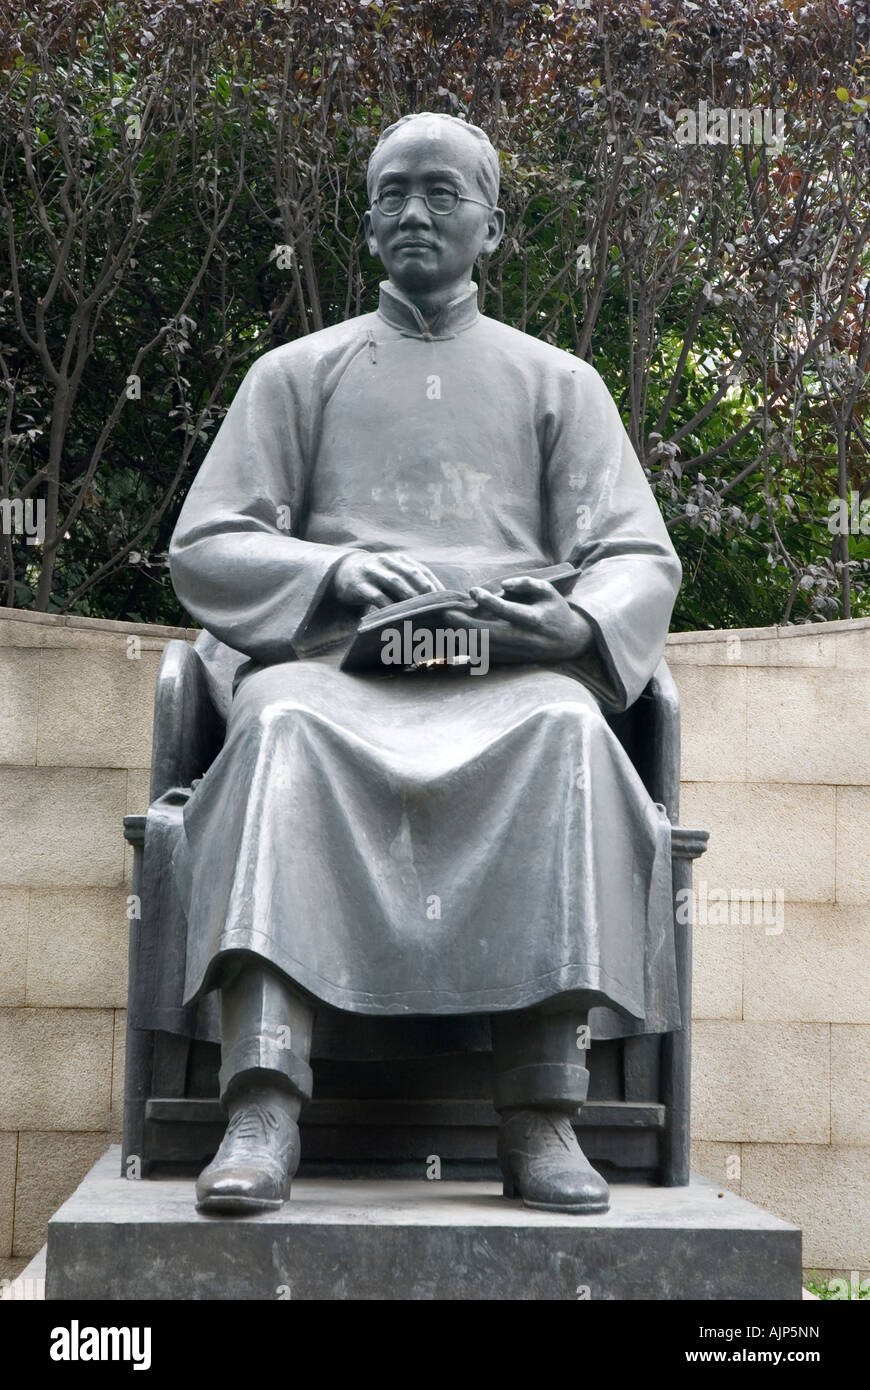 Statue of Cai Yuanpei 1868 1940 in Jing An Park Shanghai - Stock Image